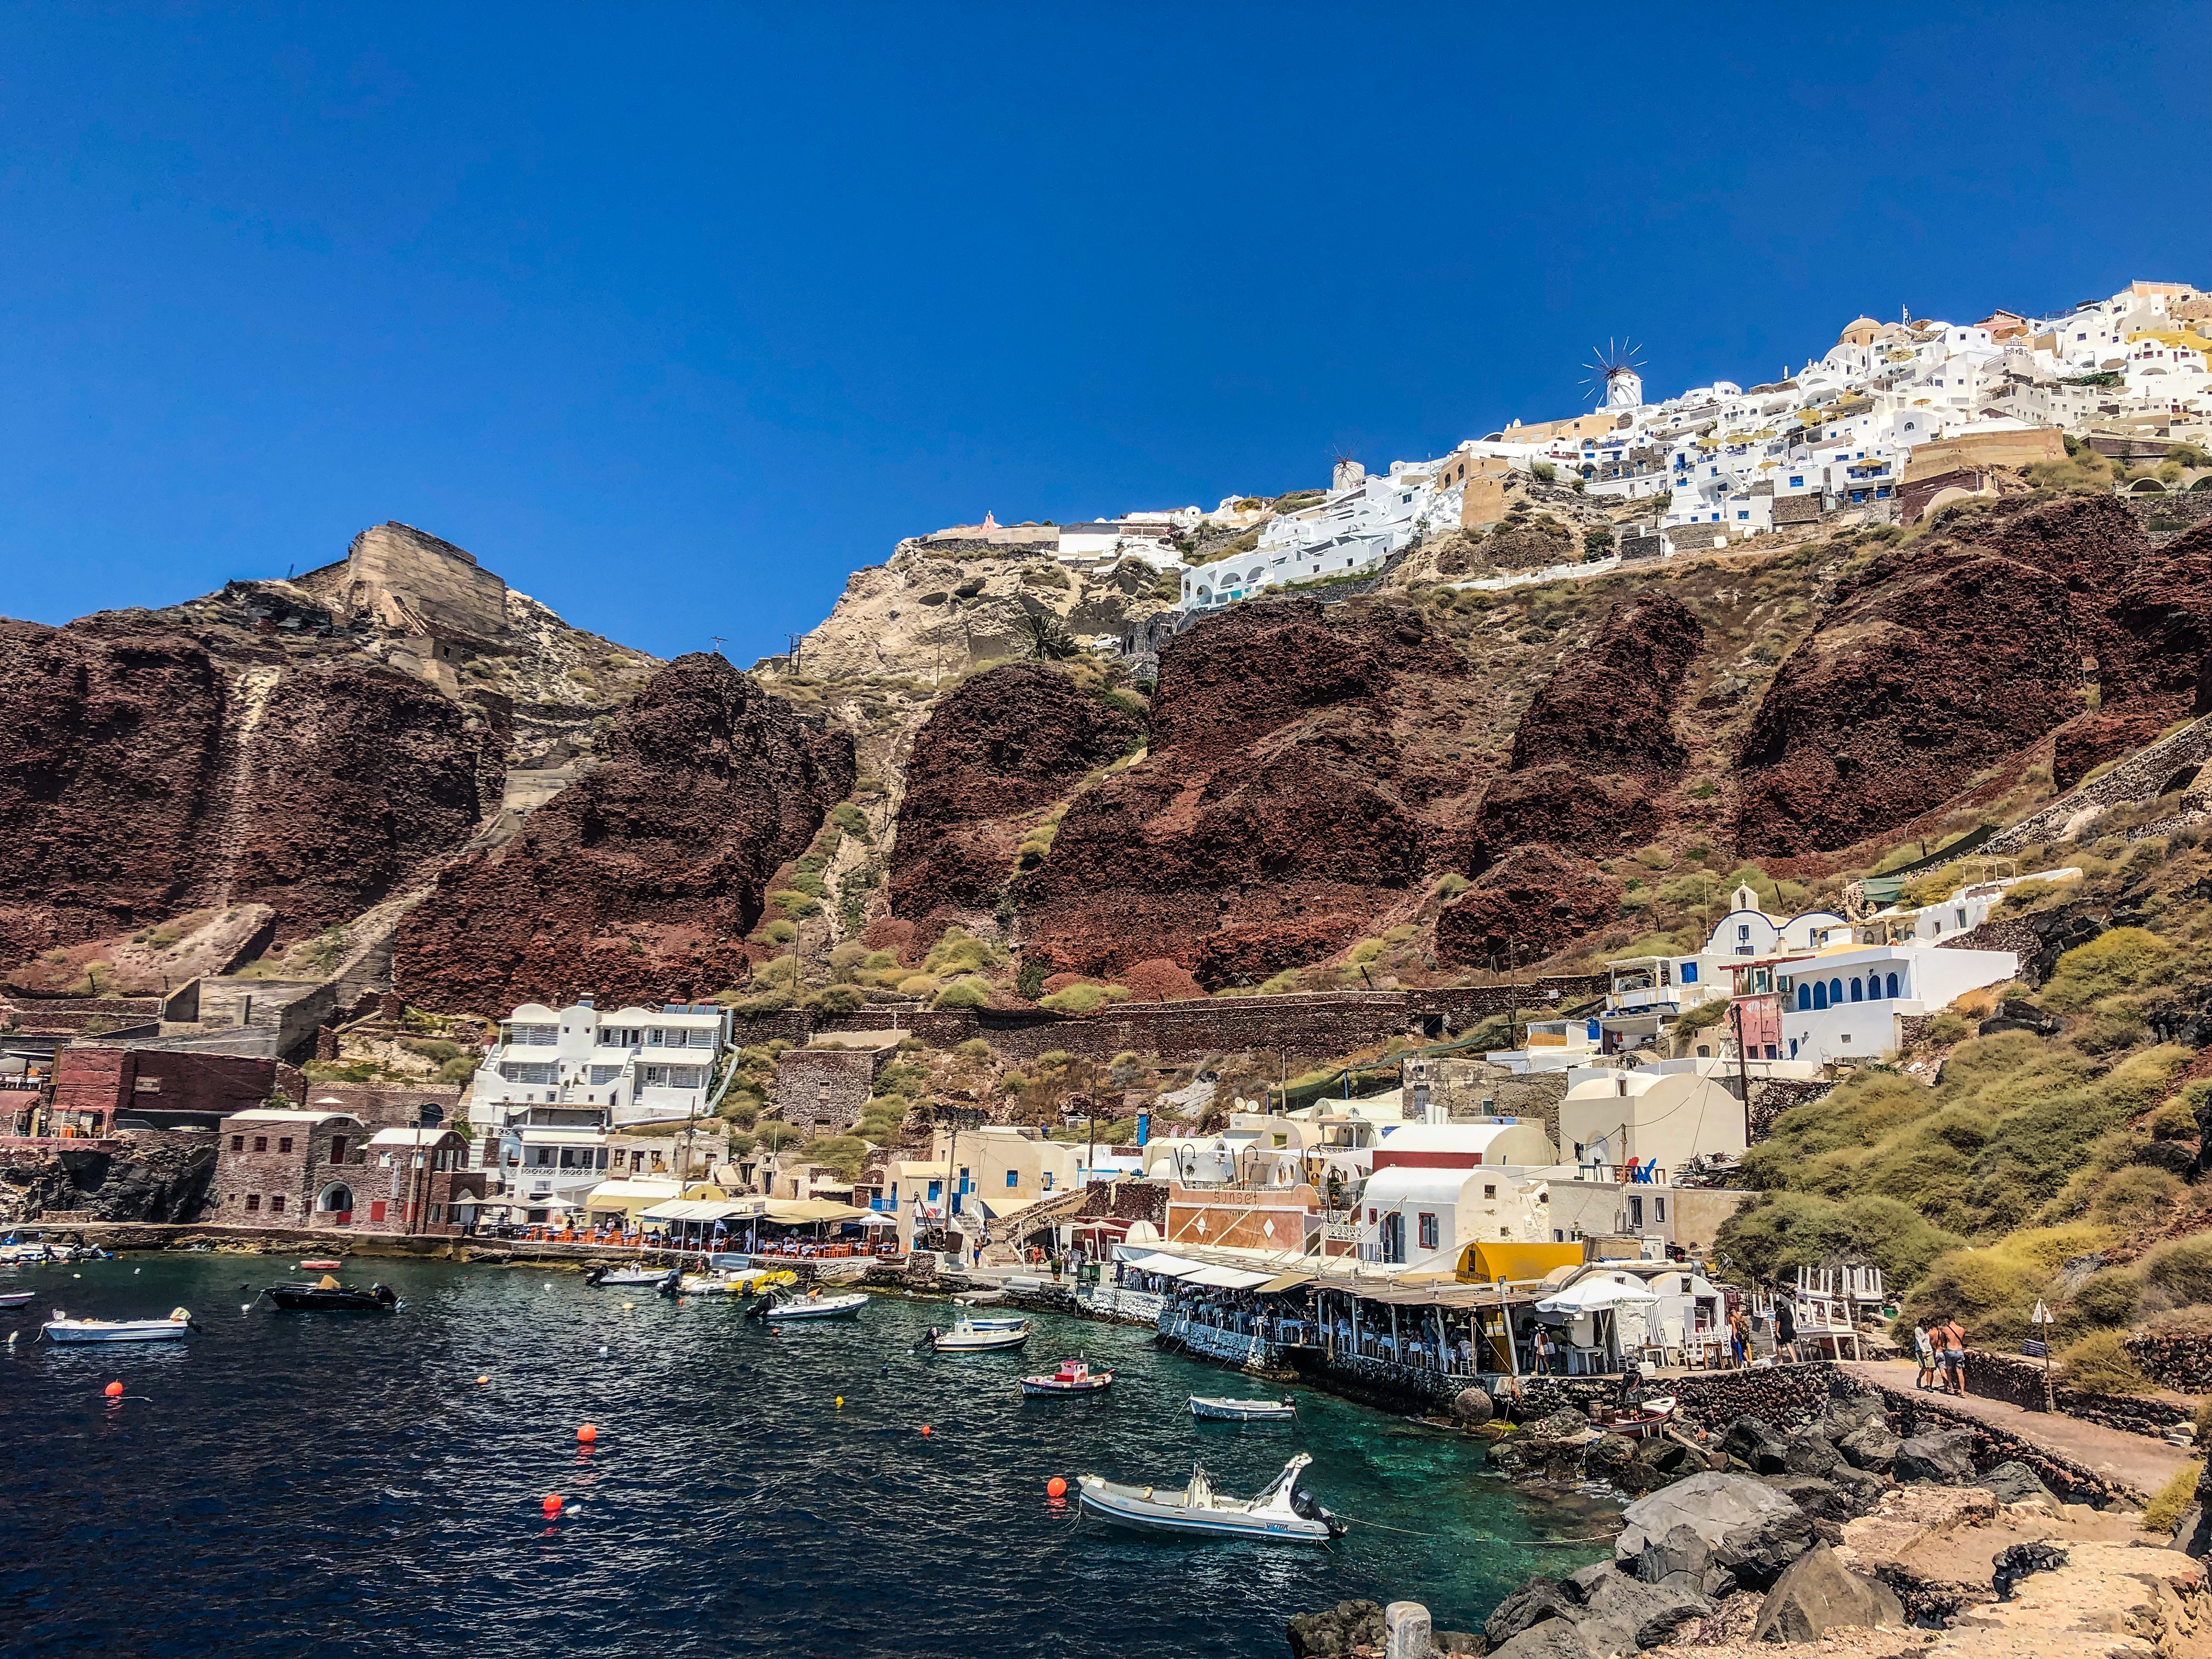 Amoudi Bay, Santorini with the town of Oia at the top of the cliff.